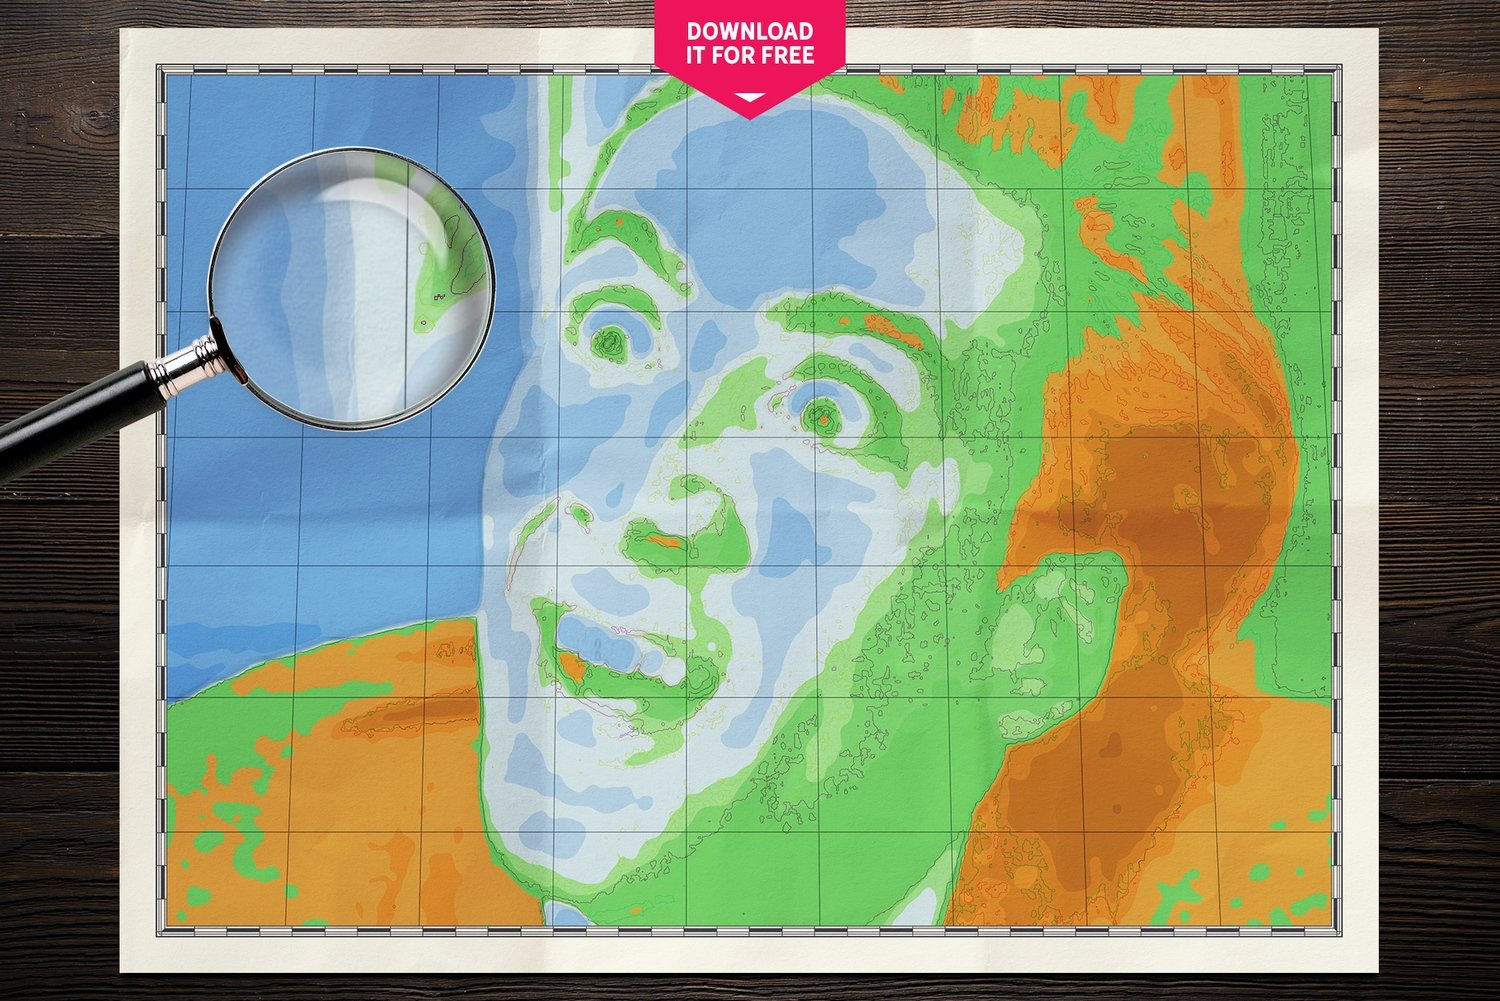 Free World Map Wall Poster: Nicolas Cage Map Wall Art Poster - 831333336